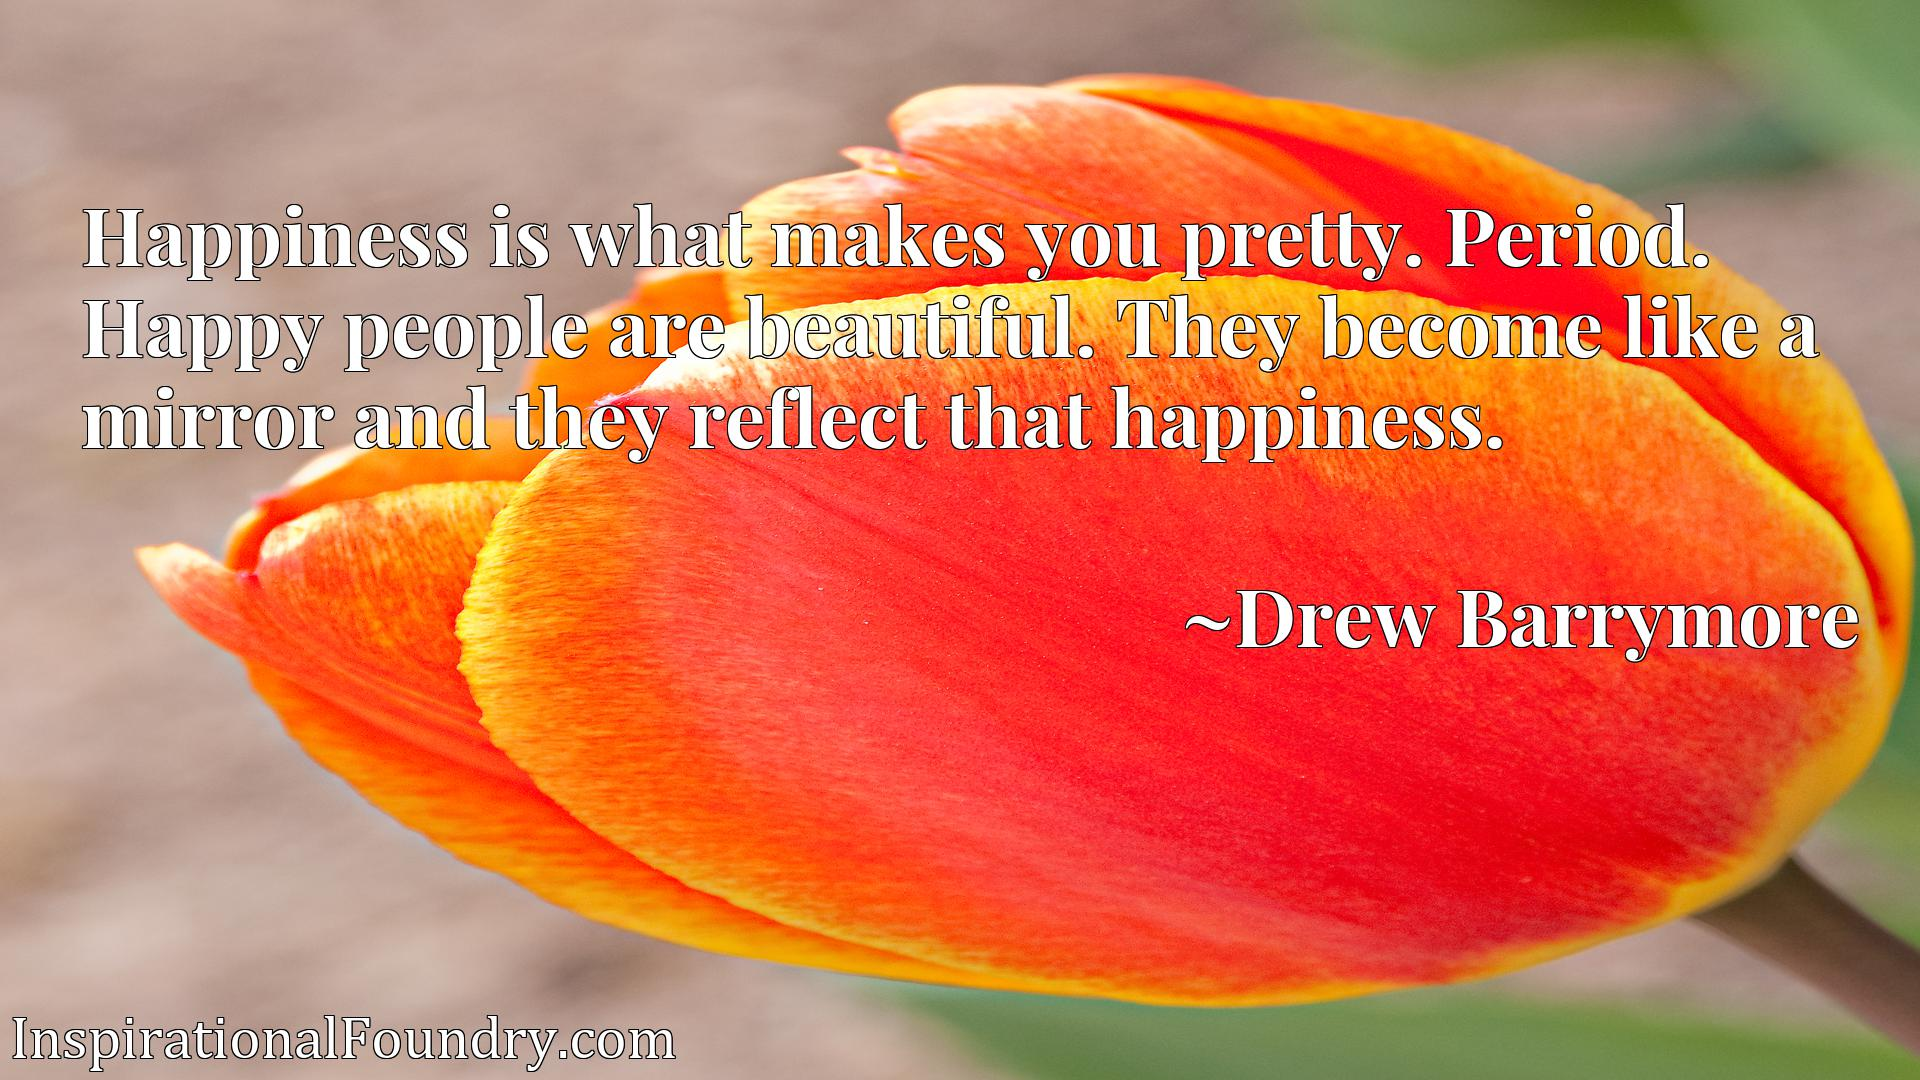 Happiness is what makes you pretty. Period. Happy people are beautiful. They become like a mirror and they reflect that happiness.